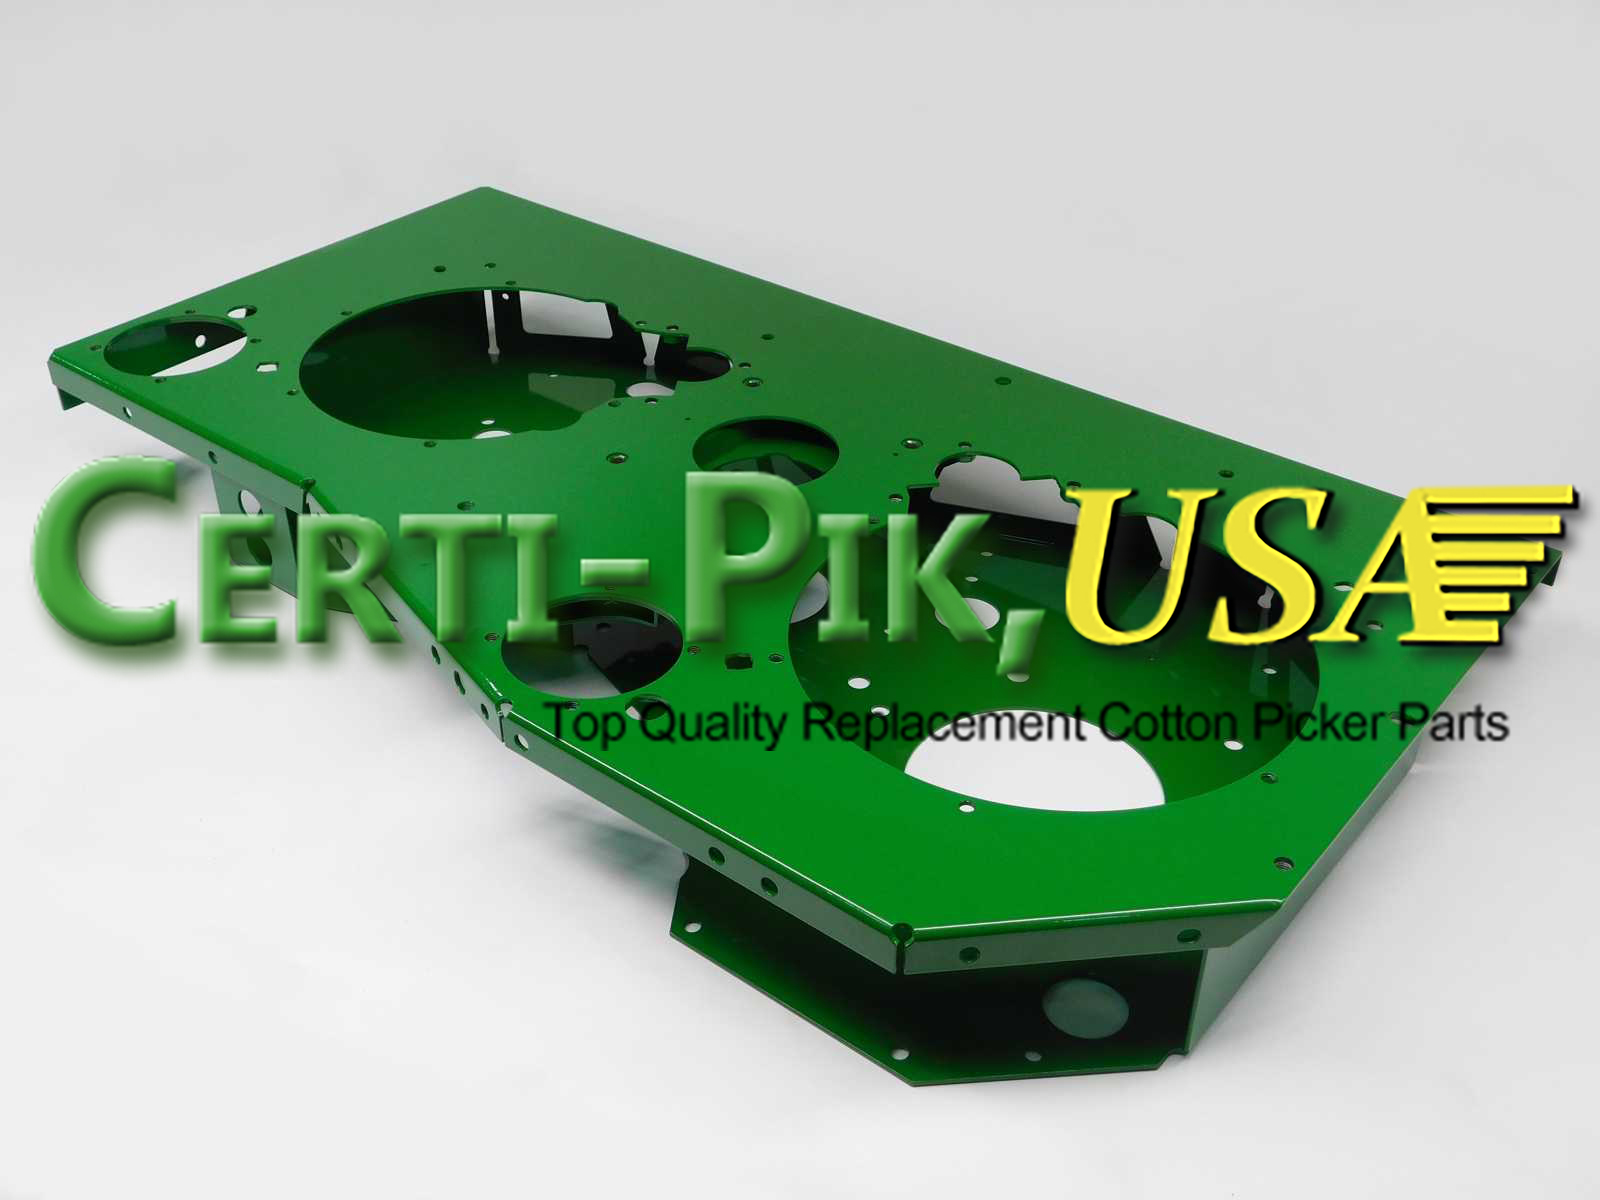 Picking Unit Cabinet: John Deere 9976-CP690 Upper Cabinet AKK14823 (14823) for Sale